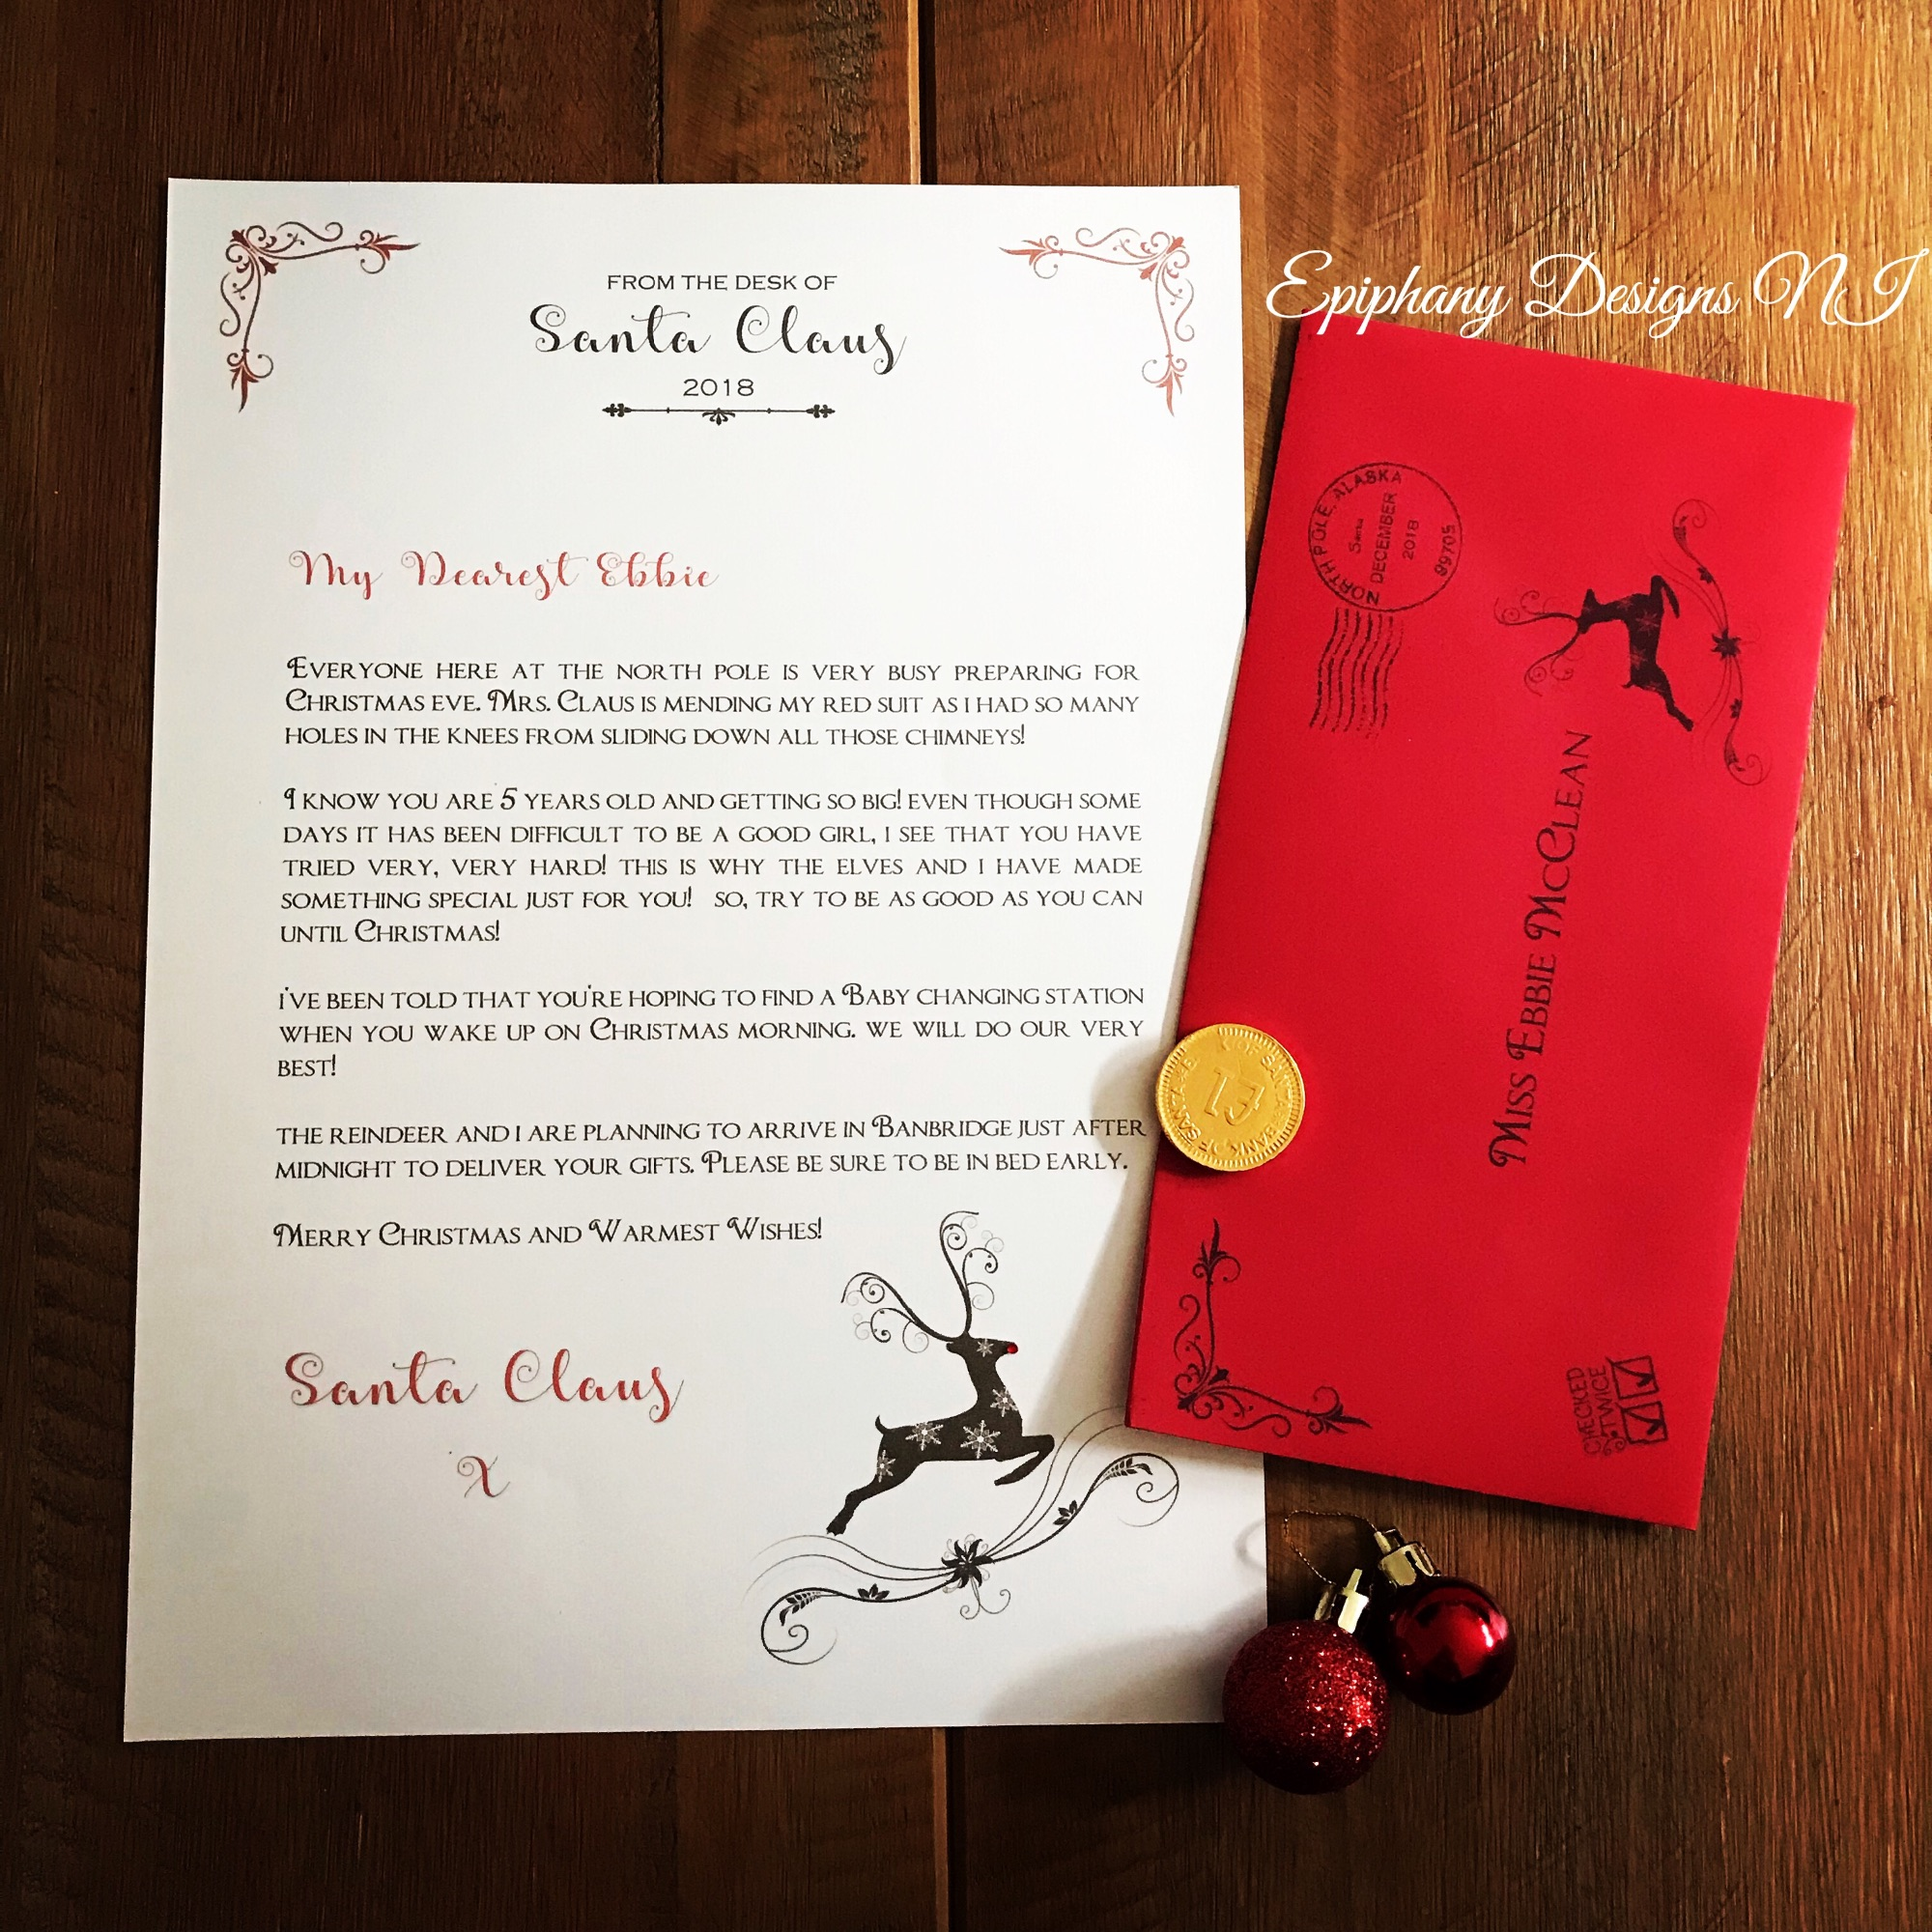 Personaised Santa letter 2018 golden pearl paper with red envelope